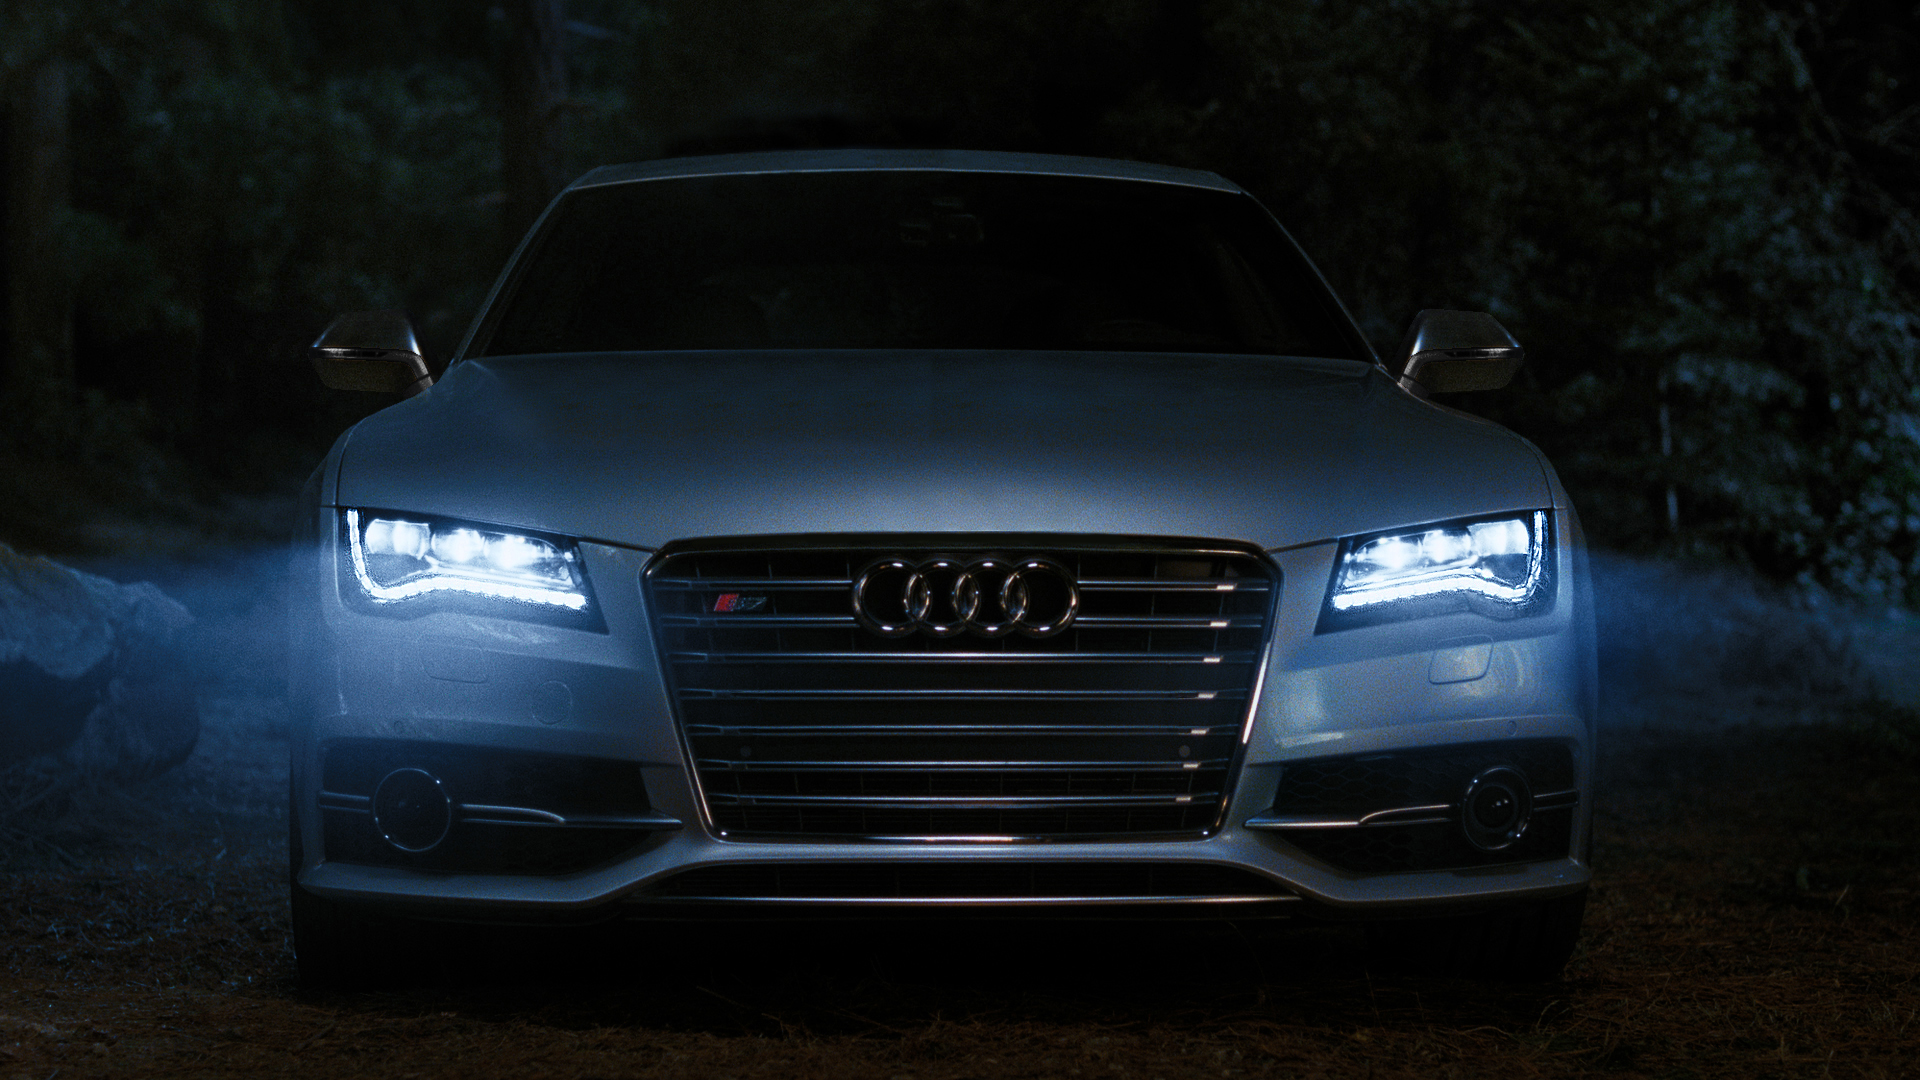 Audi Led Lights Actually Save Fuel Cut Emissions Eu Says